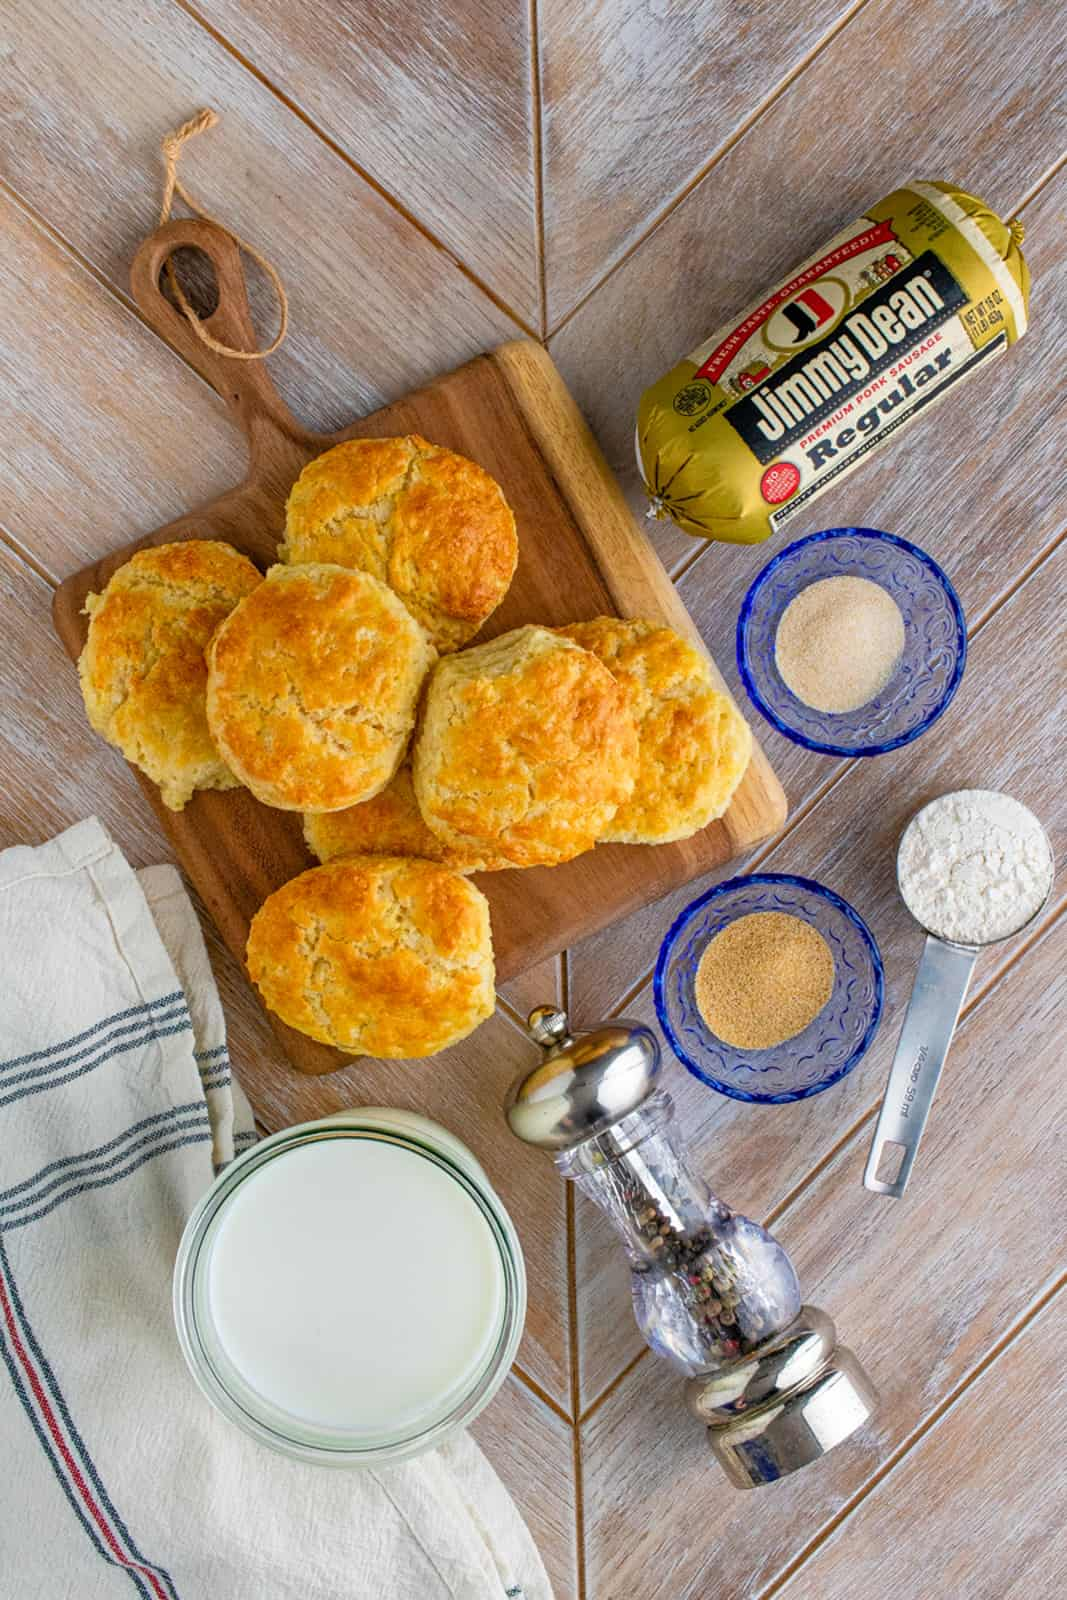 Ingredients needed to make a Homemade Biscuits and Gravy Recipe